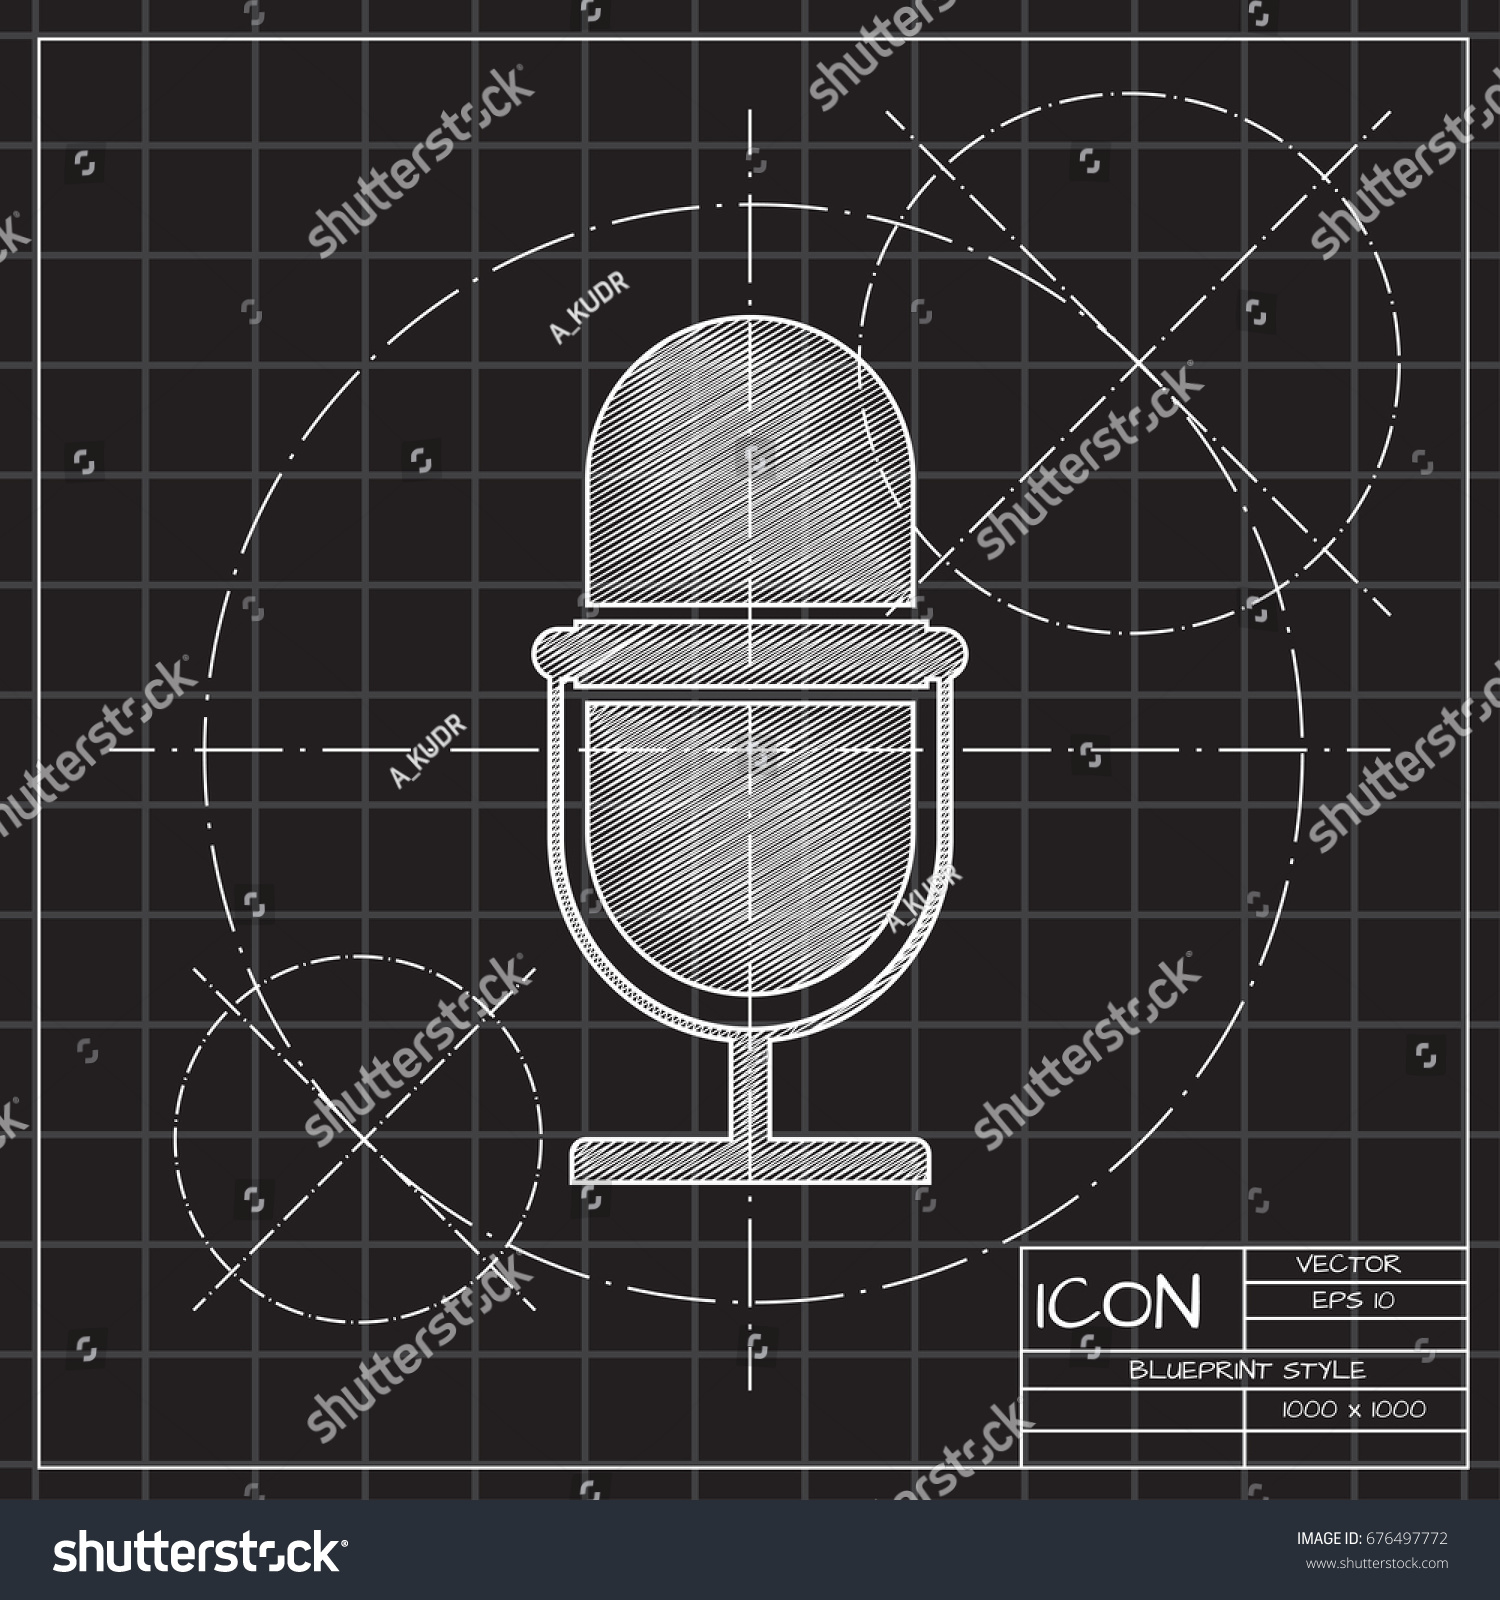 Vector blueprint retro microphone icon on vectores en stock vector blueprint retro microphone icon on engineer and architect background malvernweather Choice Image